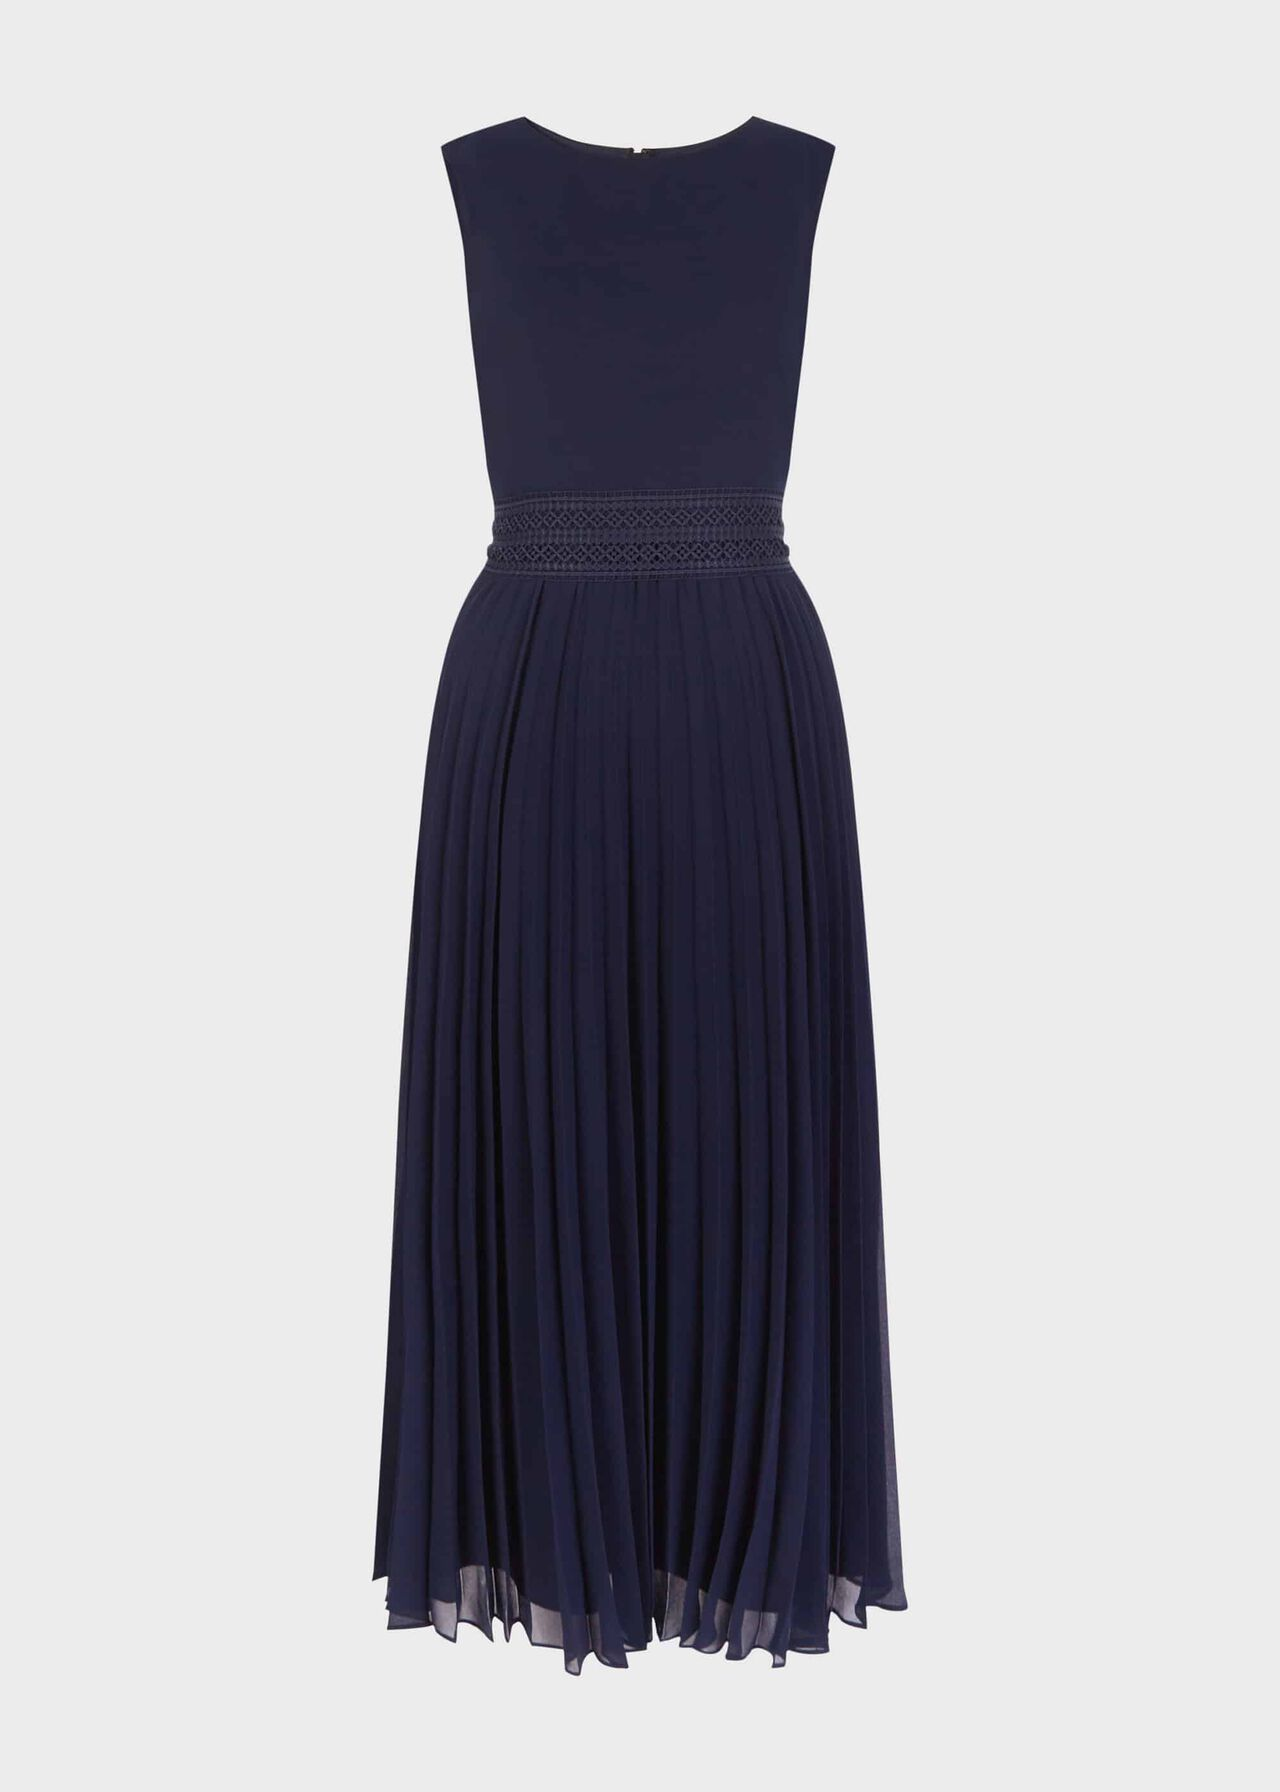 Bridgette Pleated Fit And Flare Dress Midnight